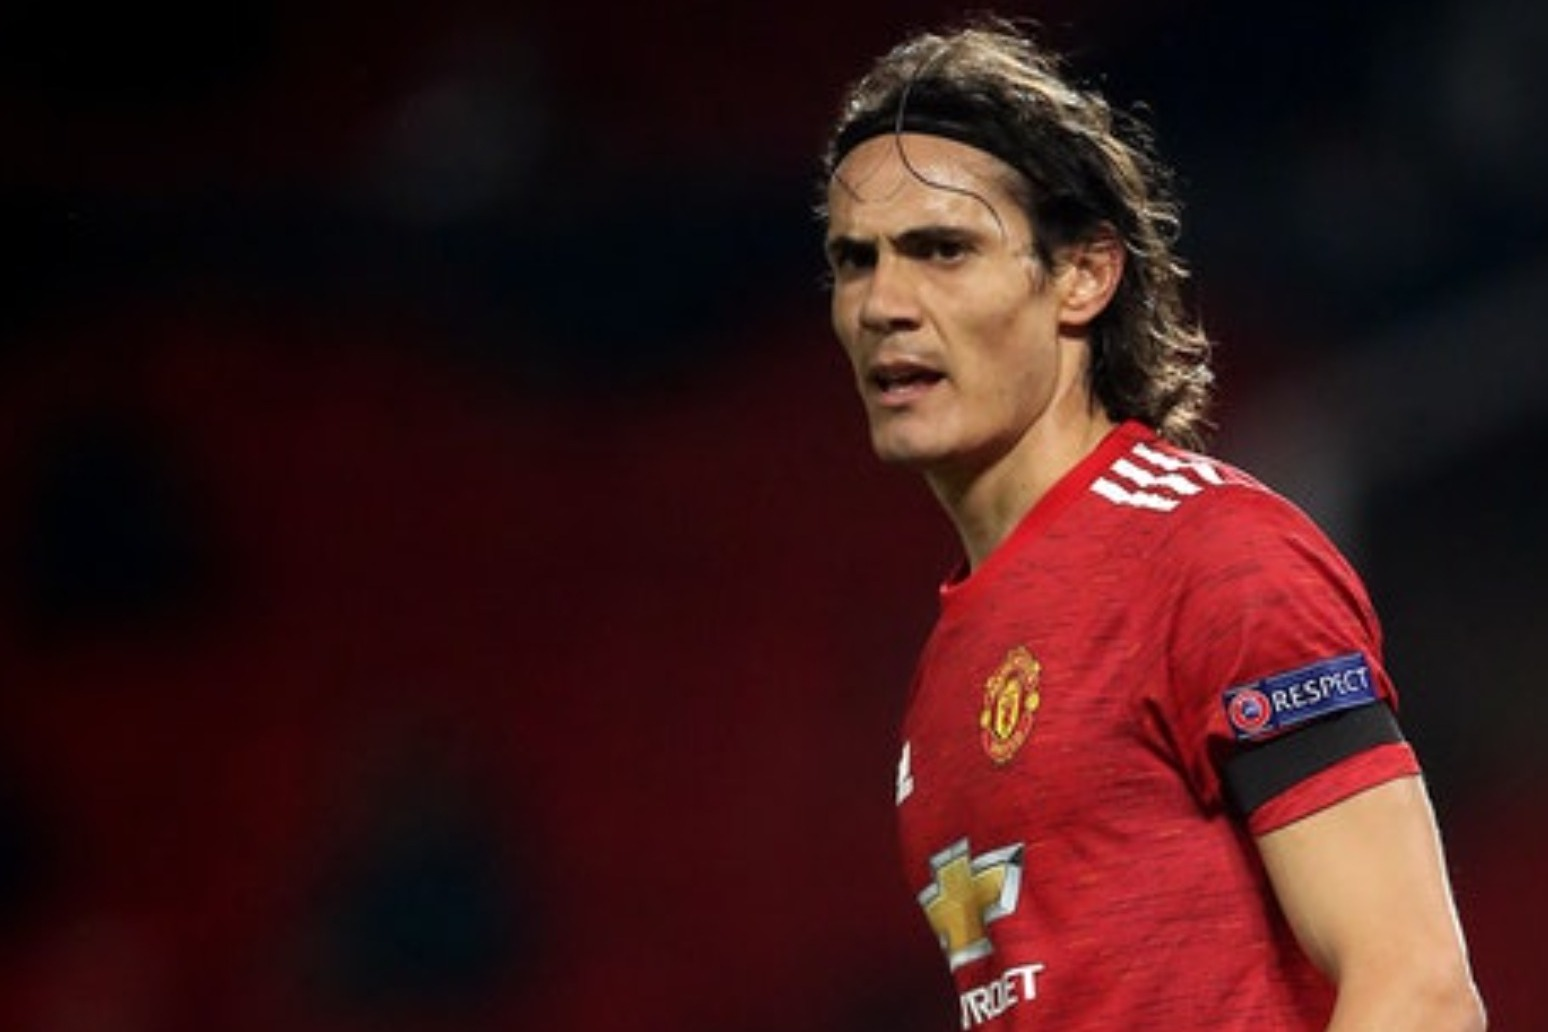 Edinson Cavani charged by Football Association following social media post thumbnail